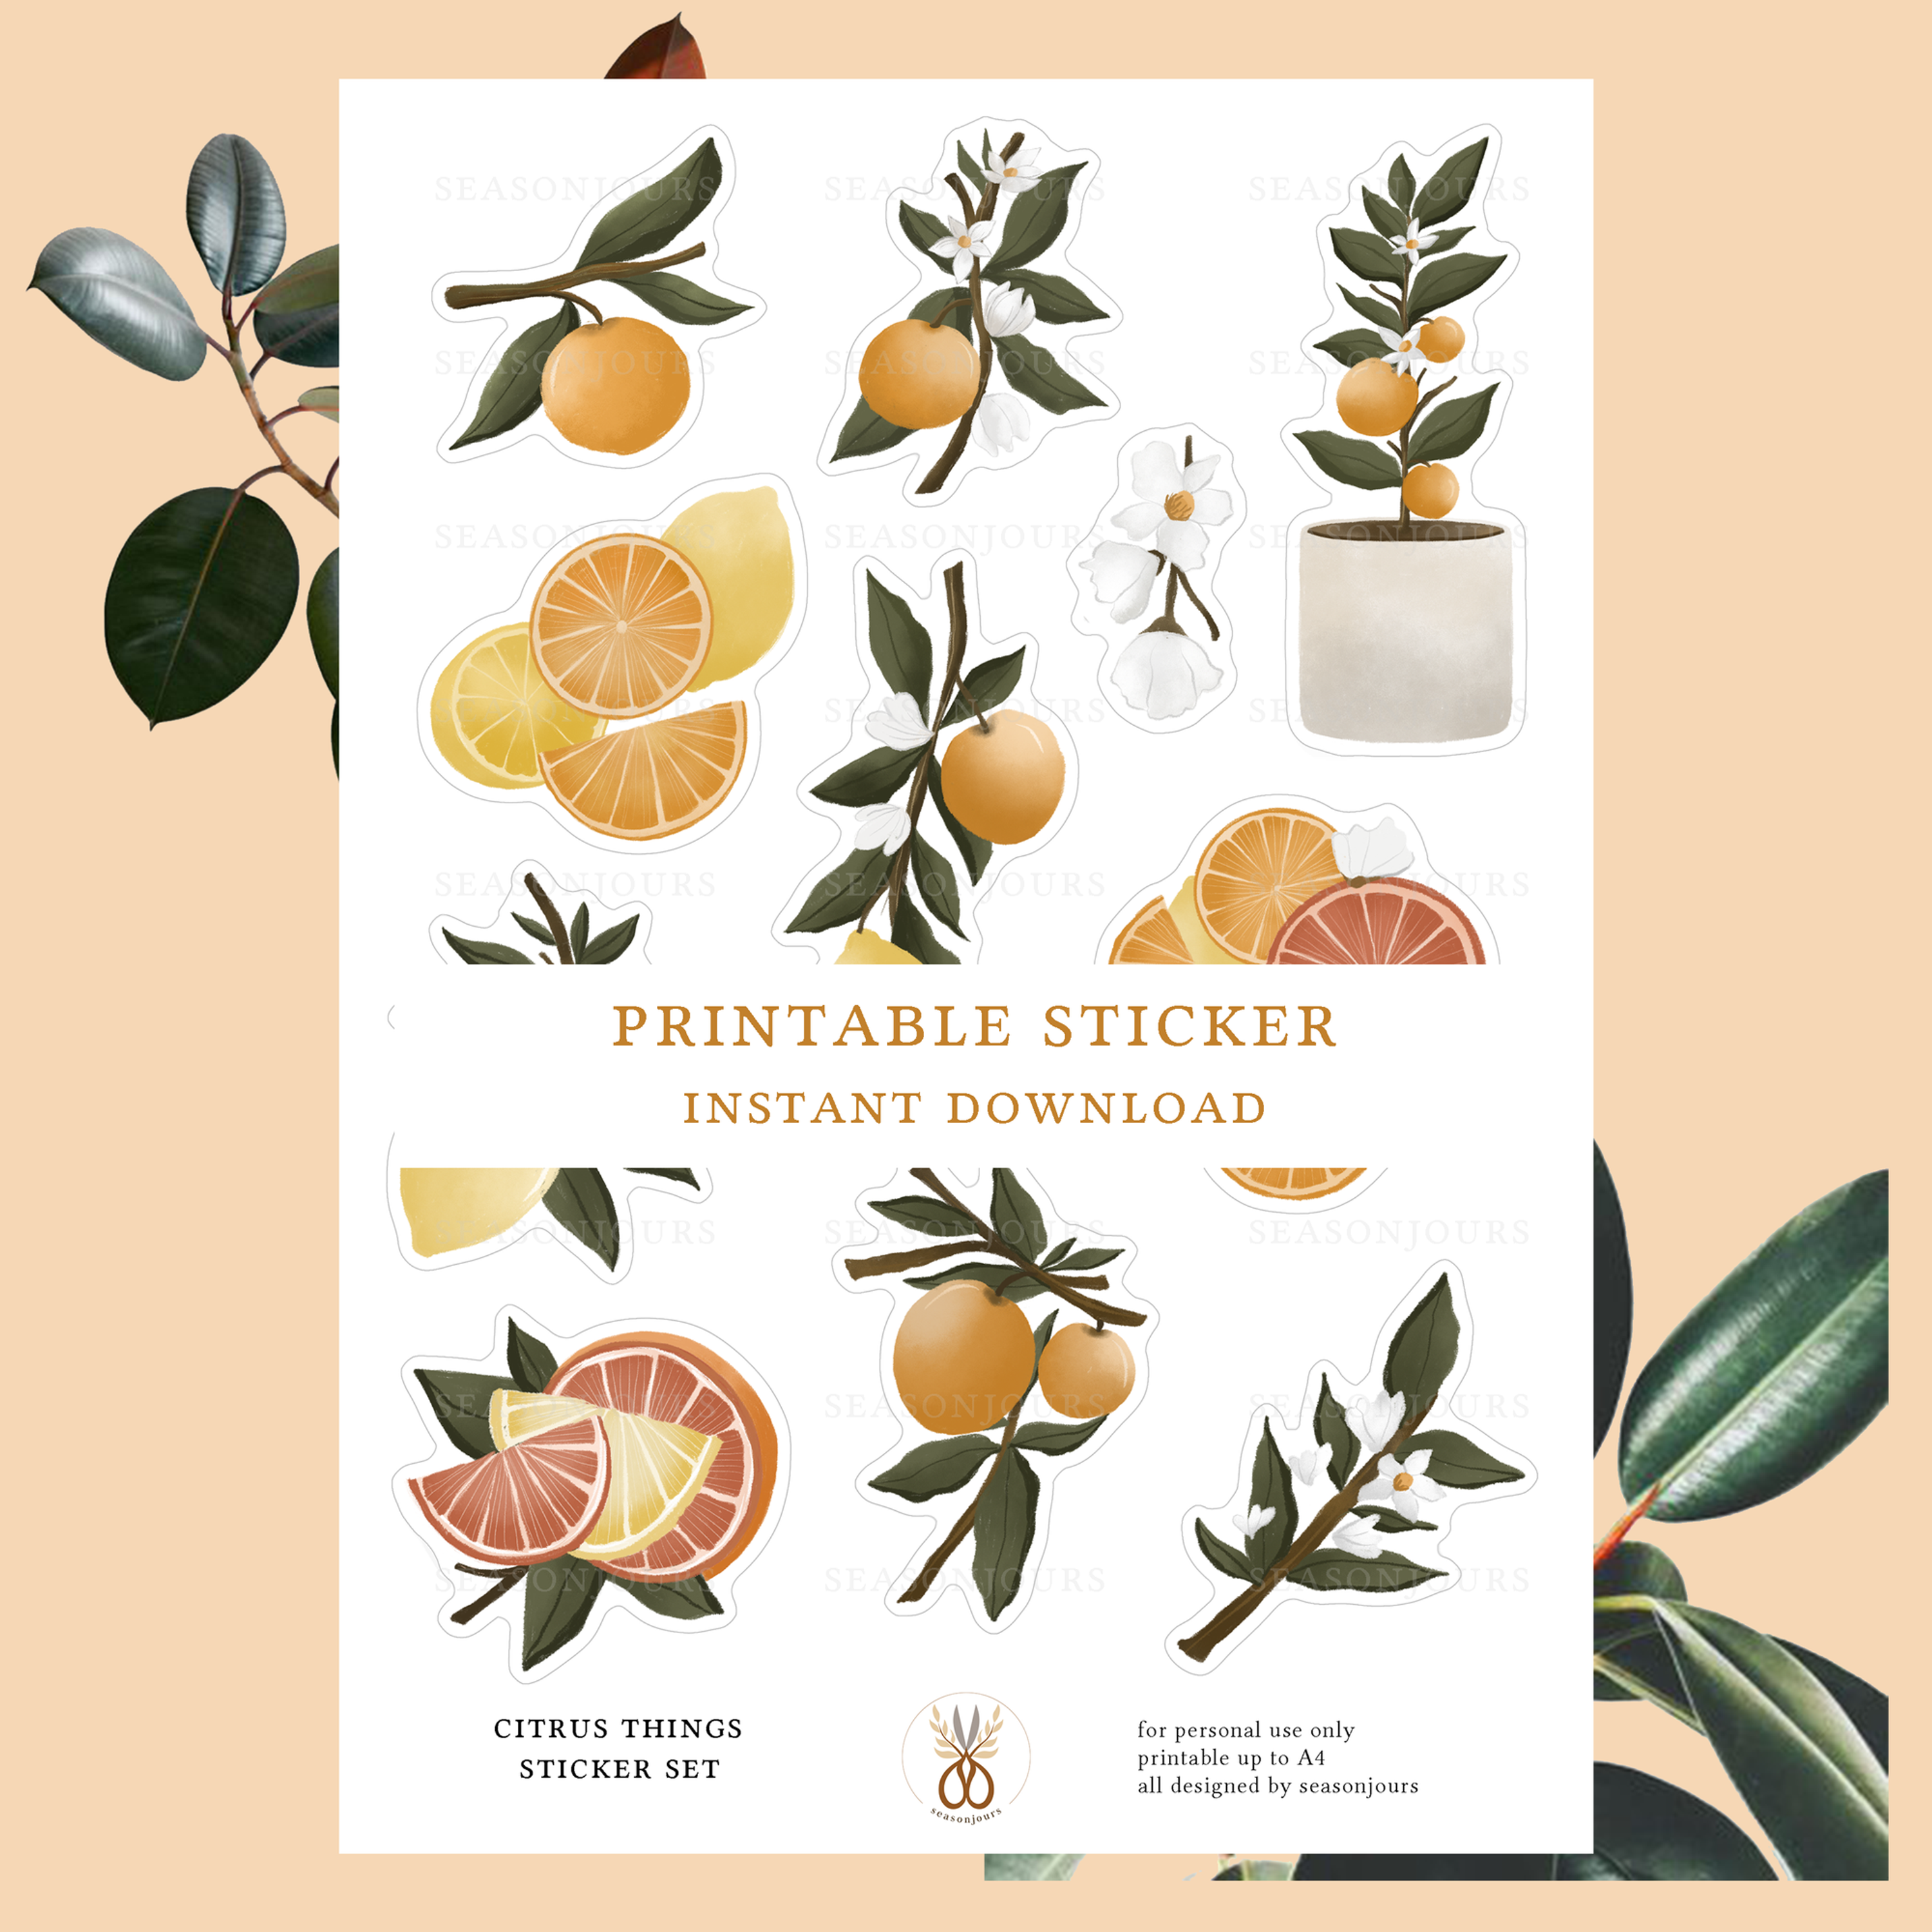 image relating to Printable Things referred to as Citrus Aspects Printable Sticker Fixed